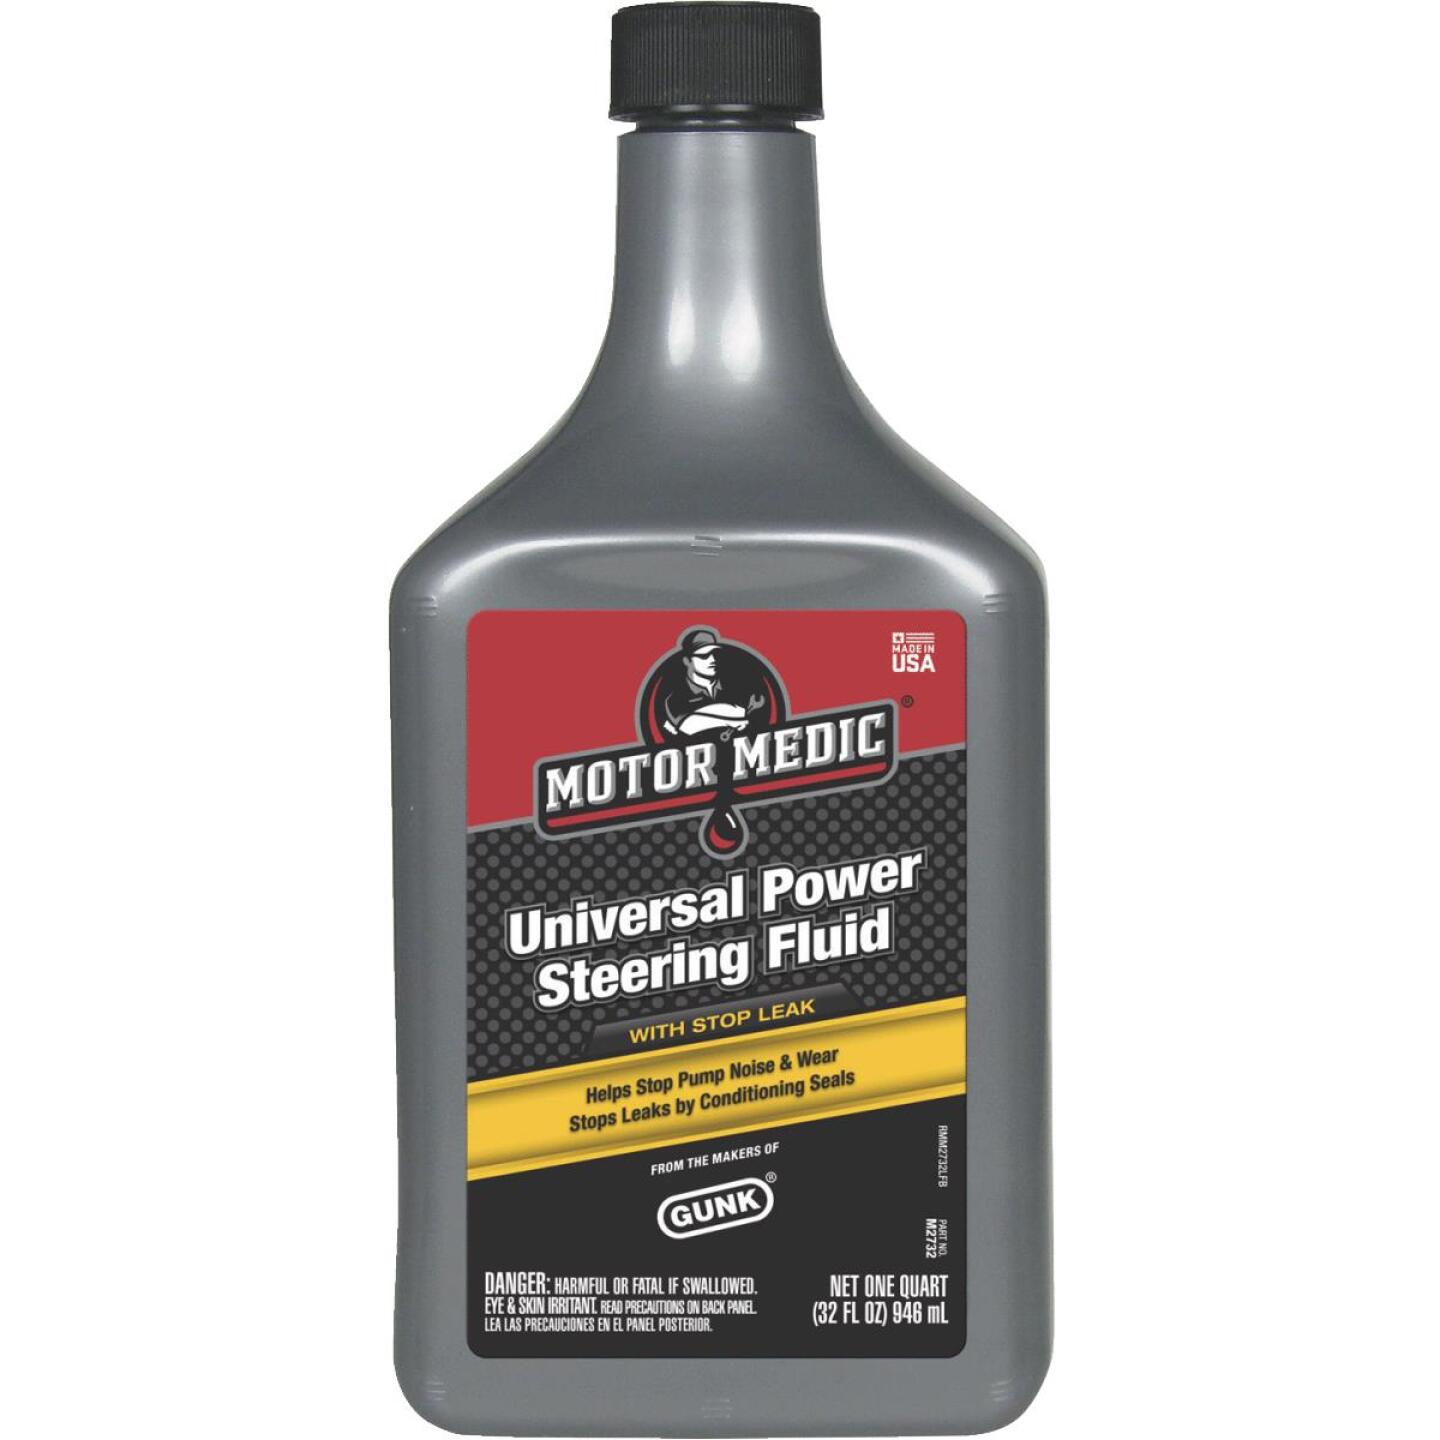 MotorMedic 32 Oz. Power Steering Fluid Image 1